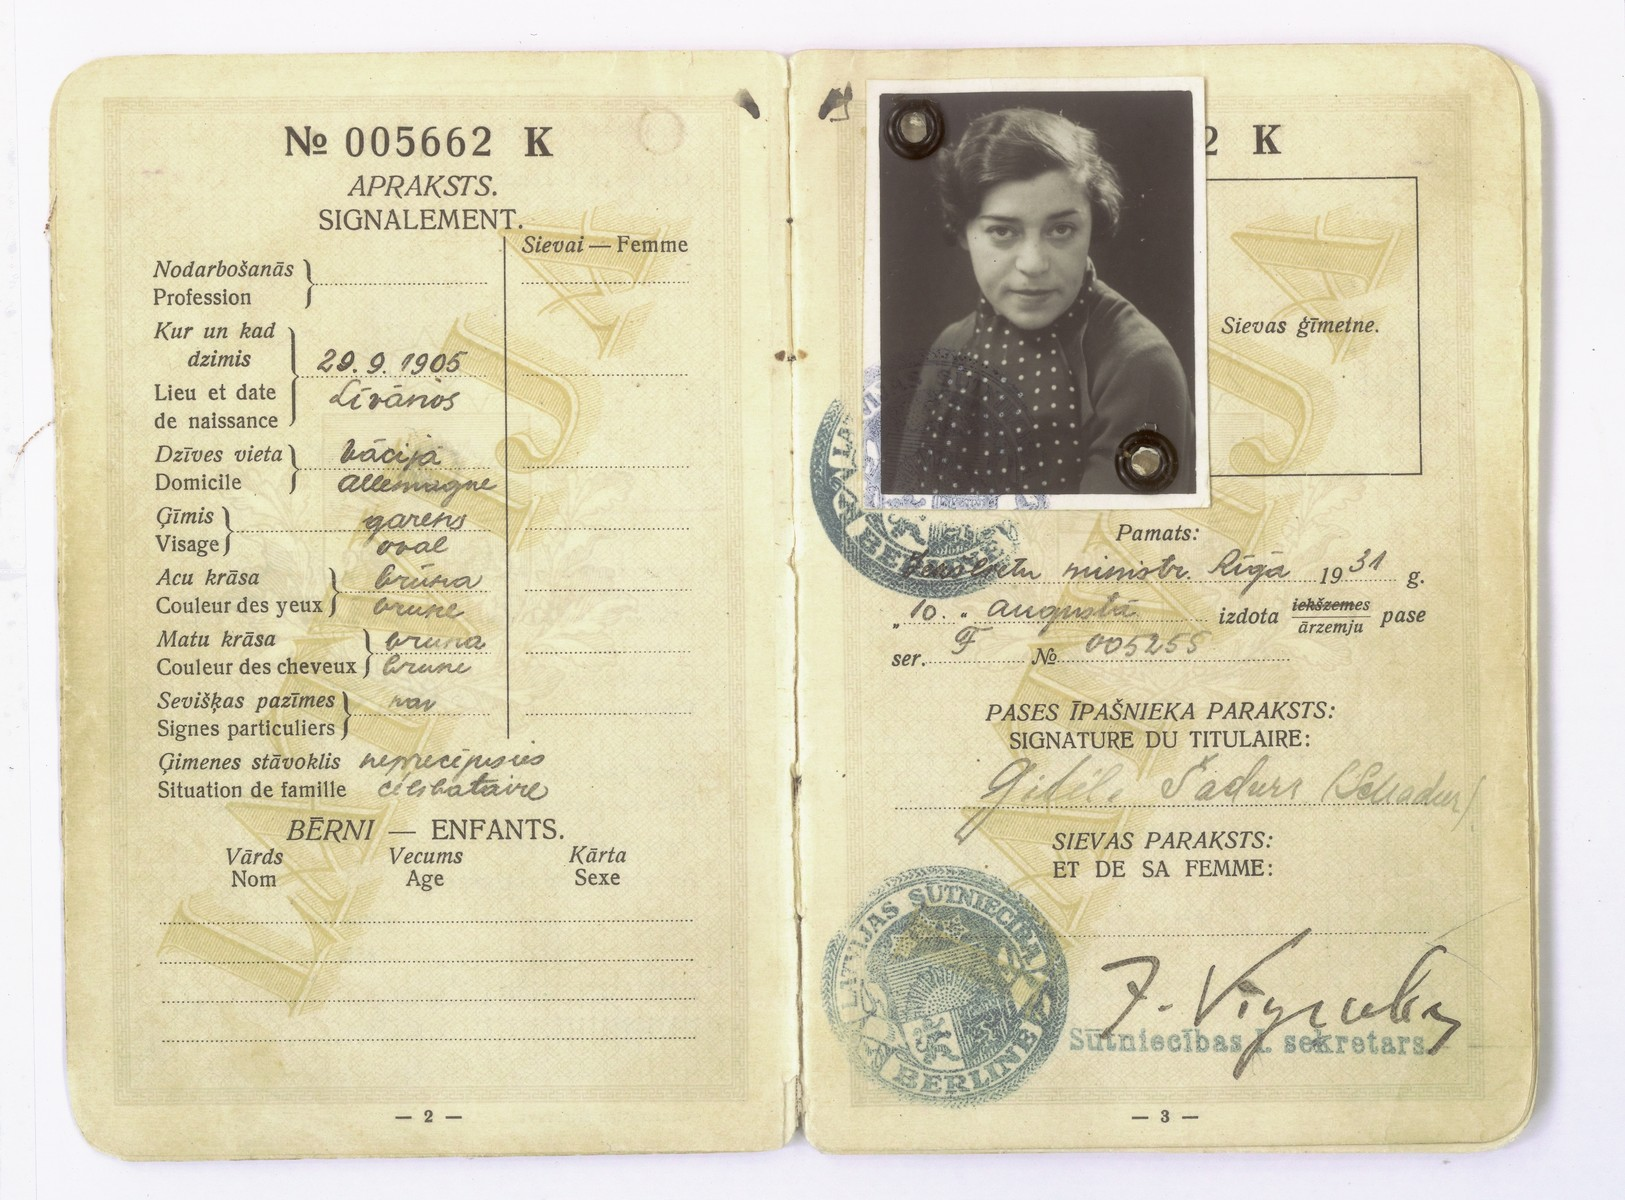 Latvian passport belonging to Gitta Schadur, the donor's aunt, who emigrated to Germany in 1931.